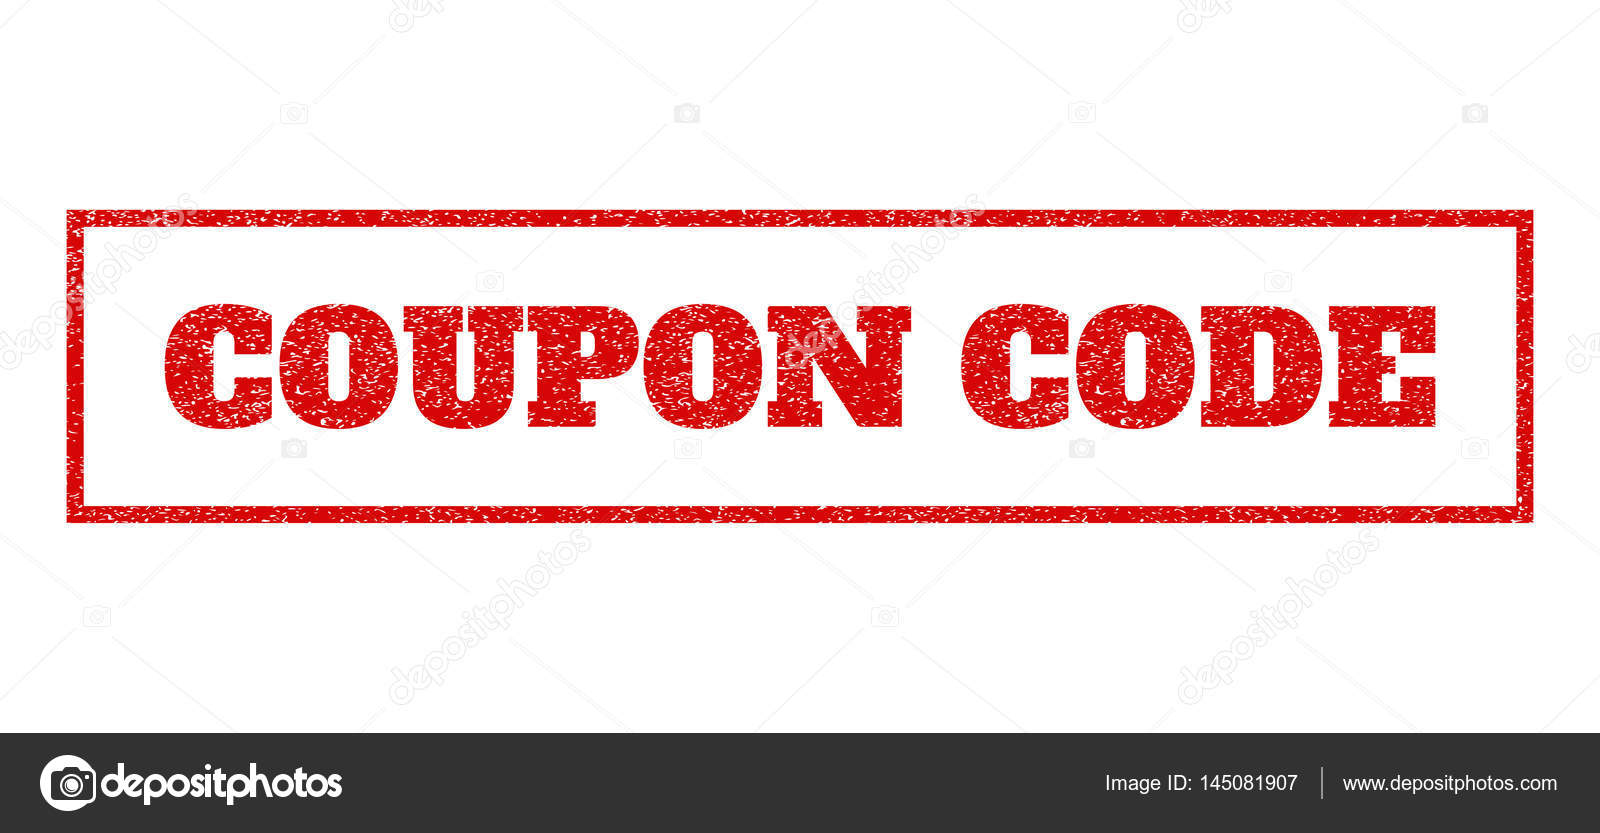 Do you offer things other than RED STAMP Coupon Promo Codes?